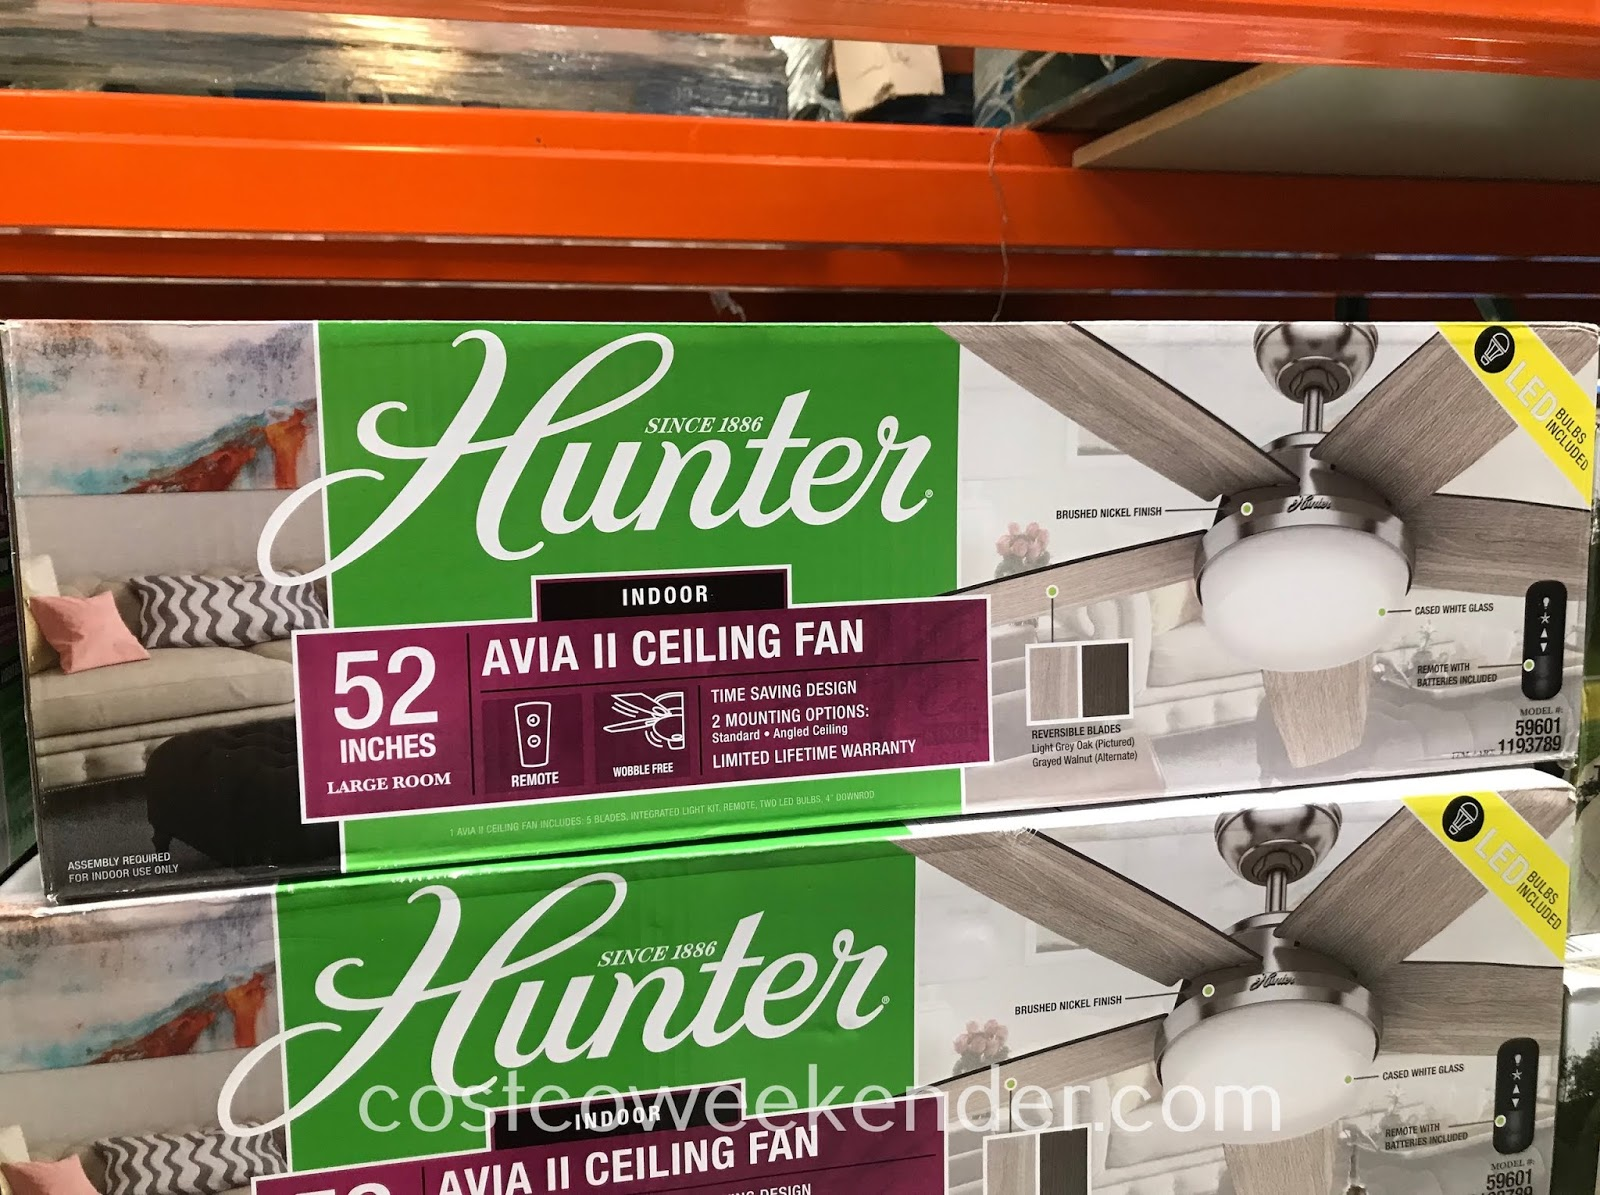 Keep your home cool this summer with the Hunter Avia II Ceiling Fan